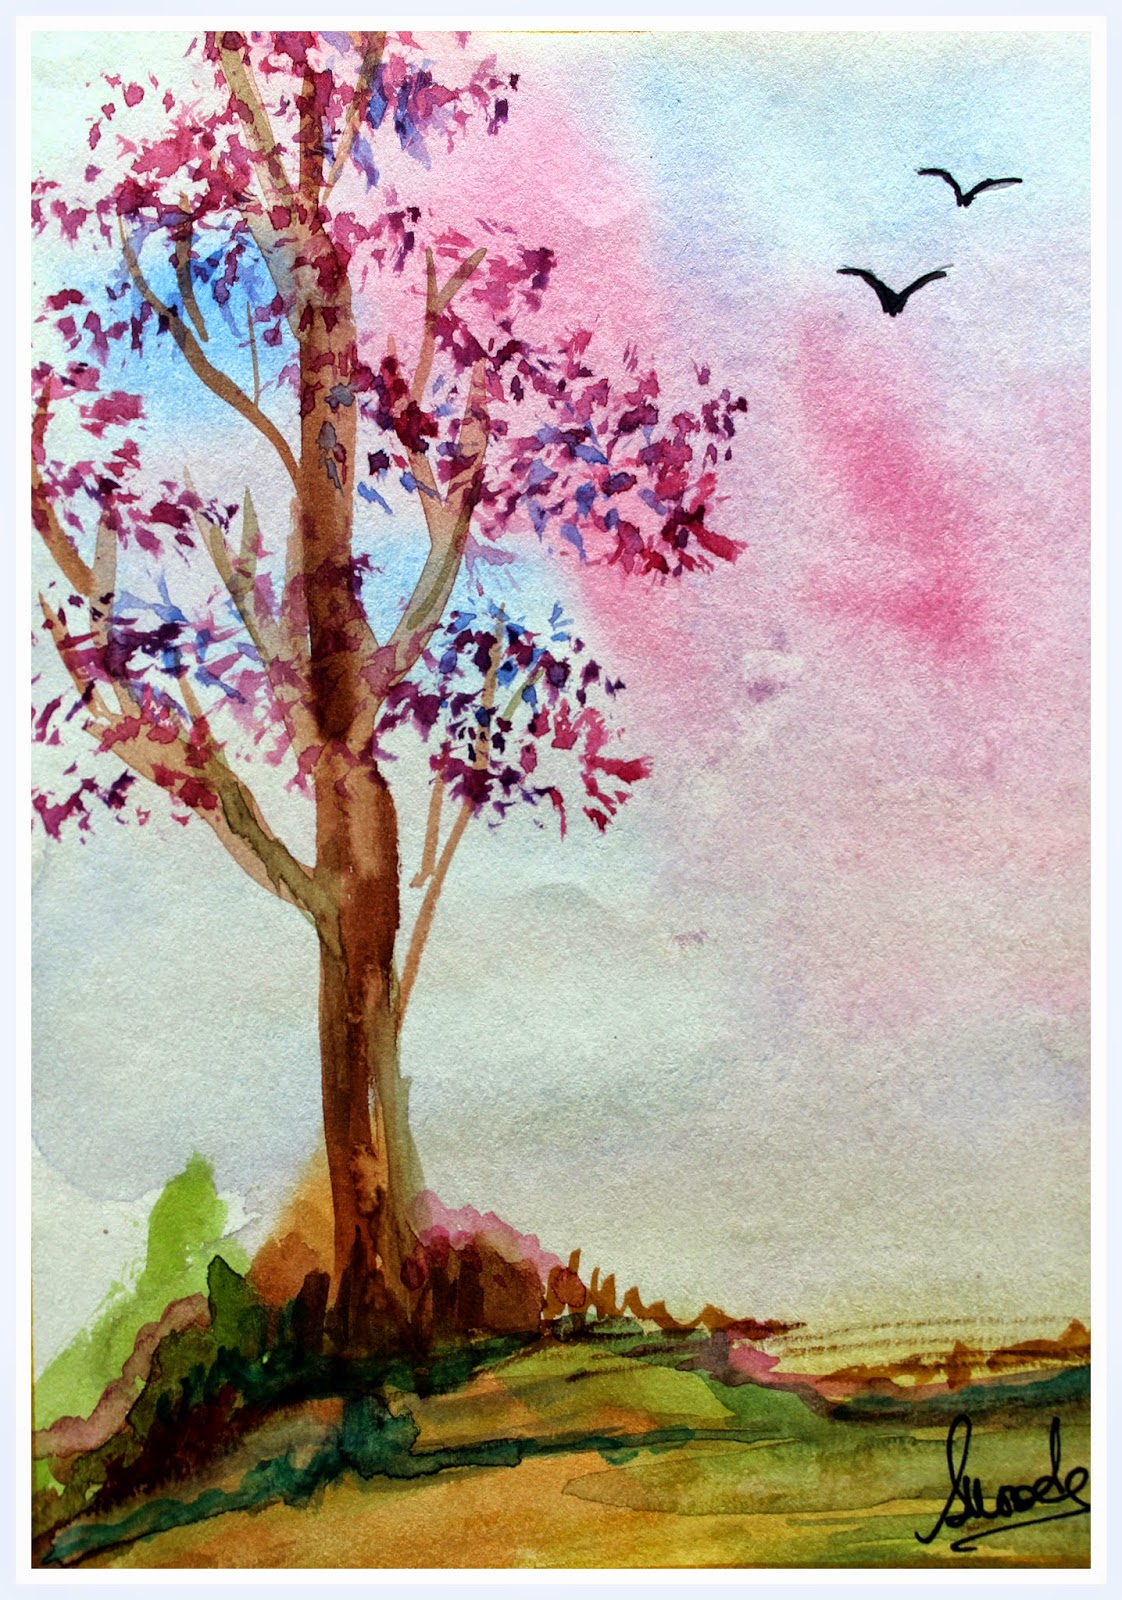 landscape sky tree scenery scene painting watercolor